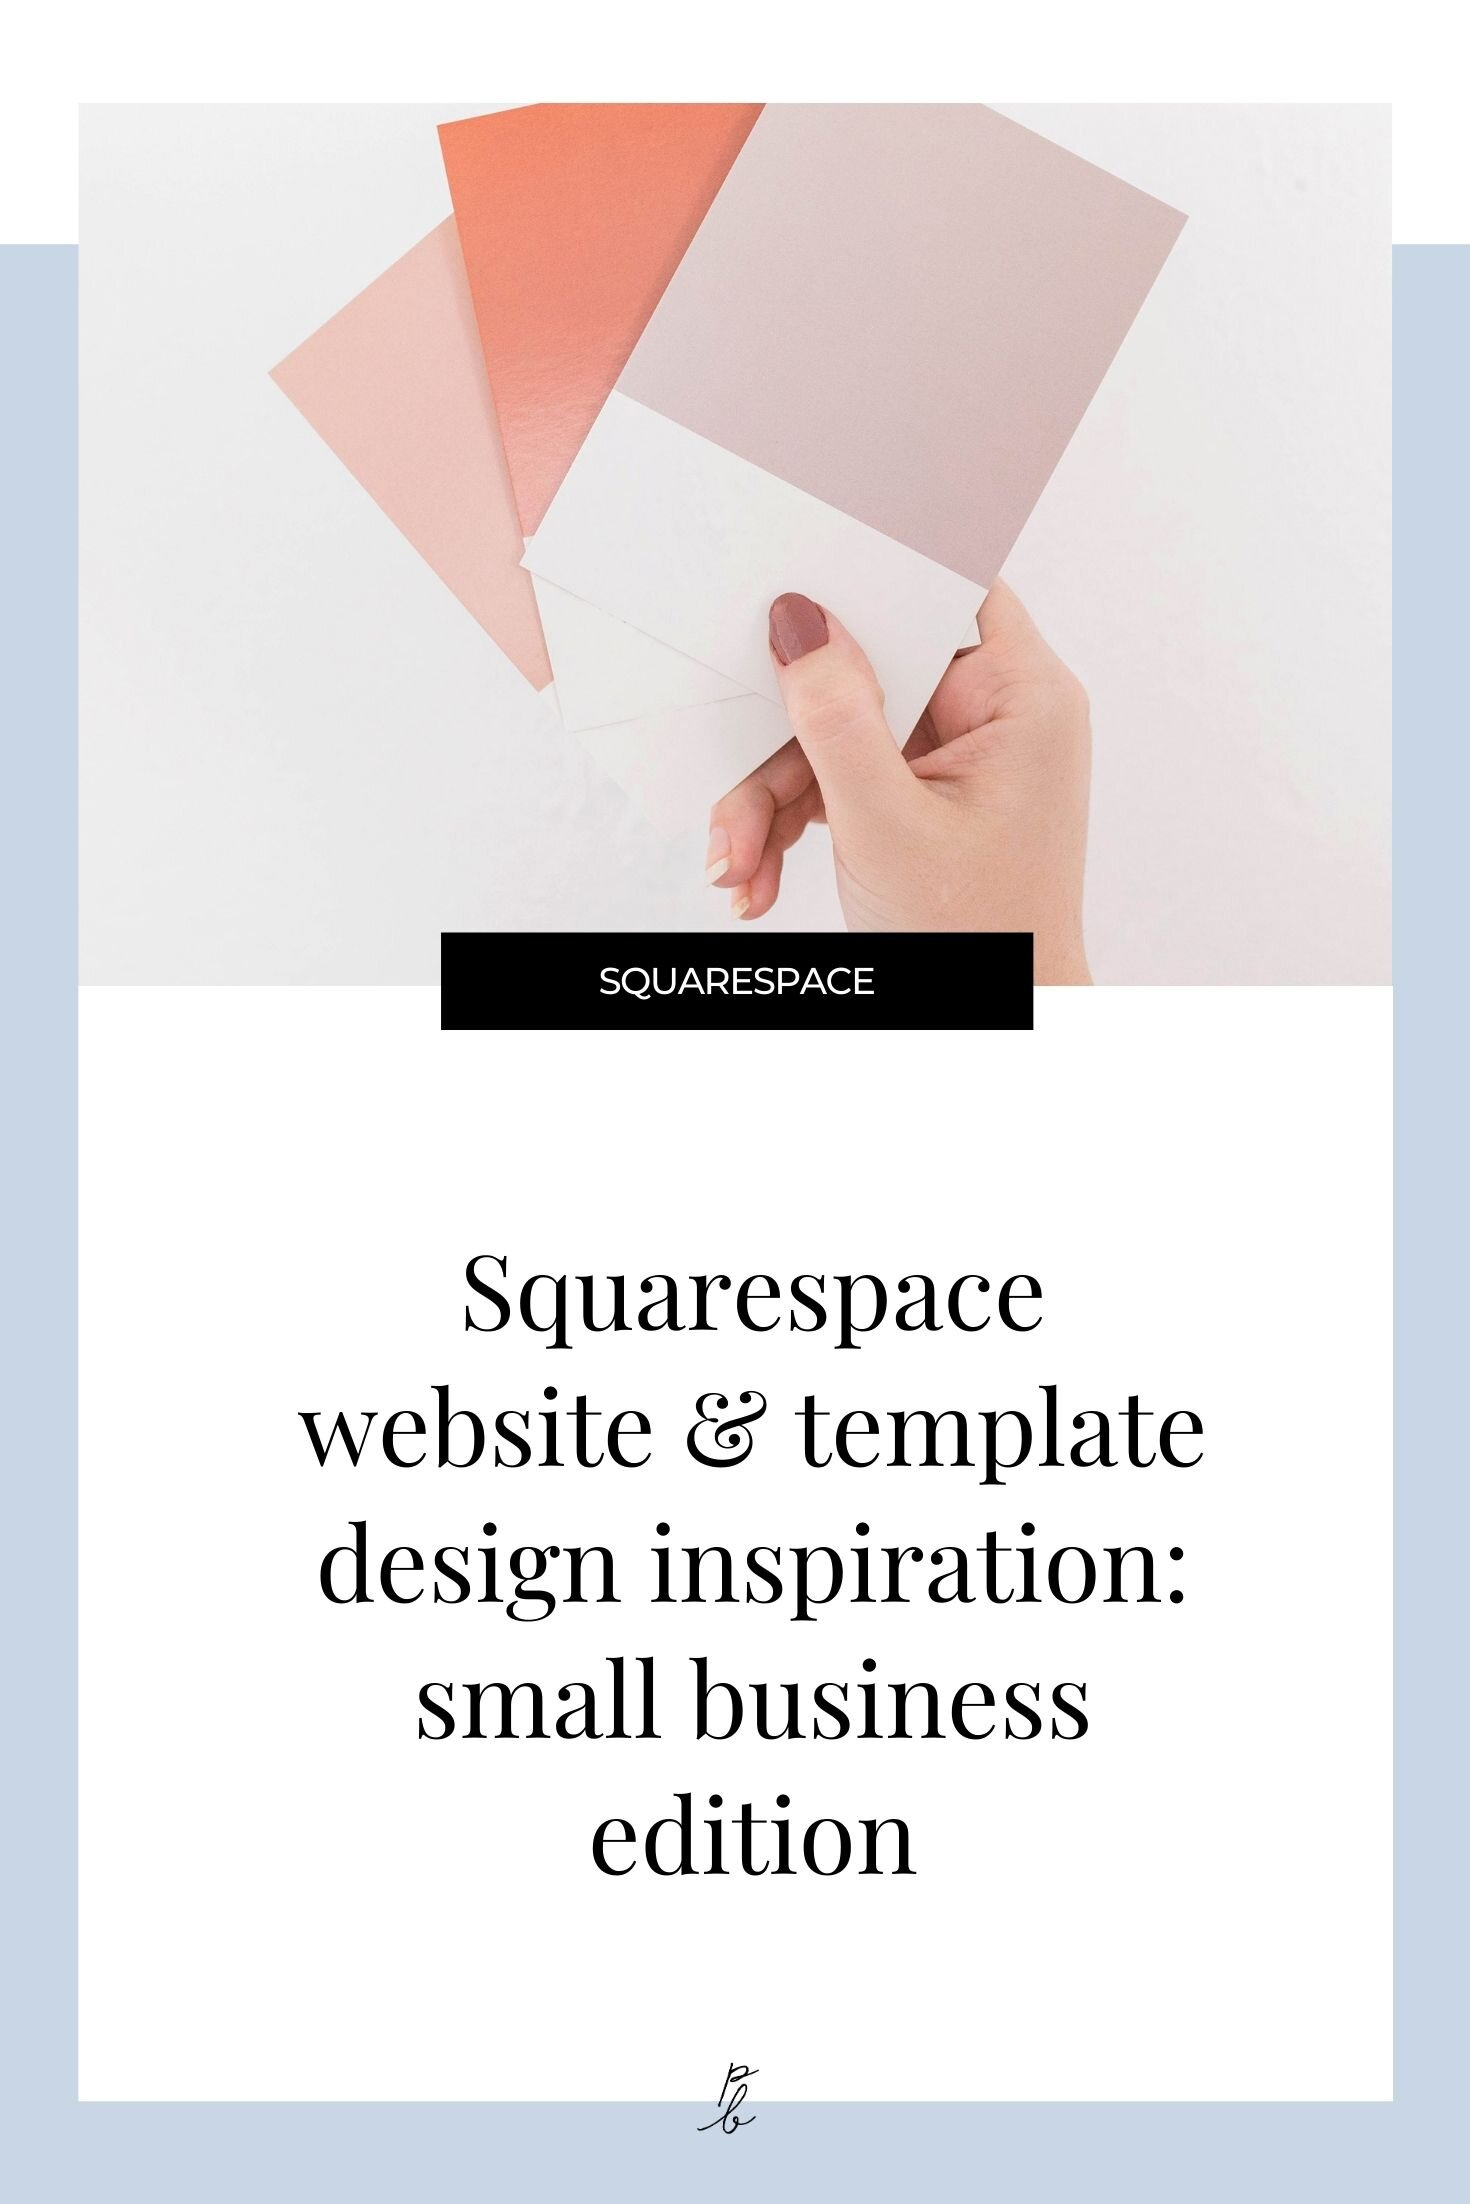 Free Access Templates For Small Business 10 best example squarespace websites • small business